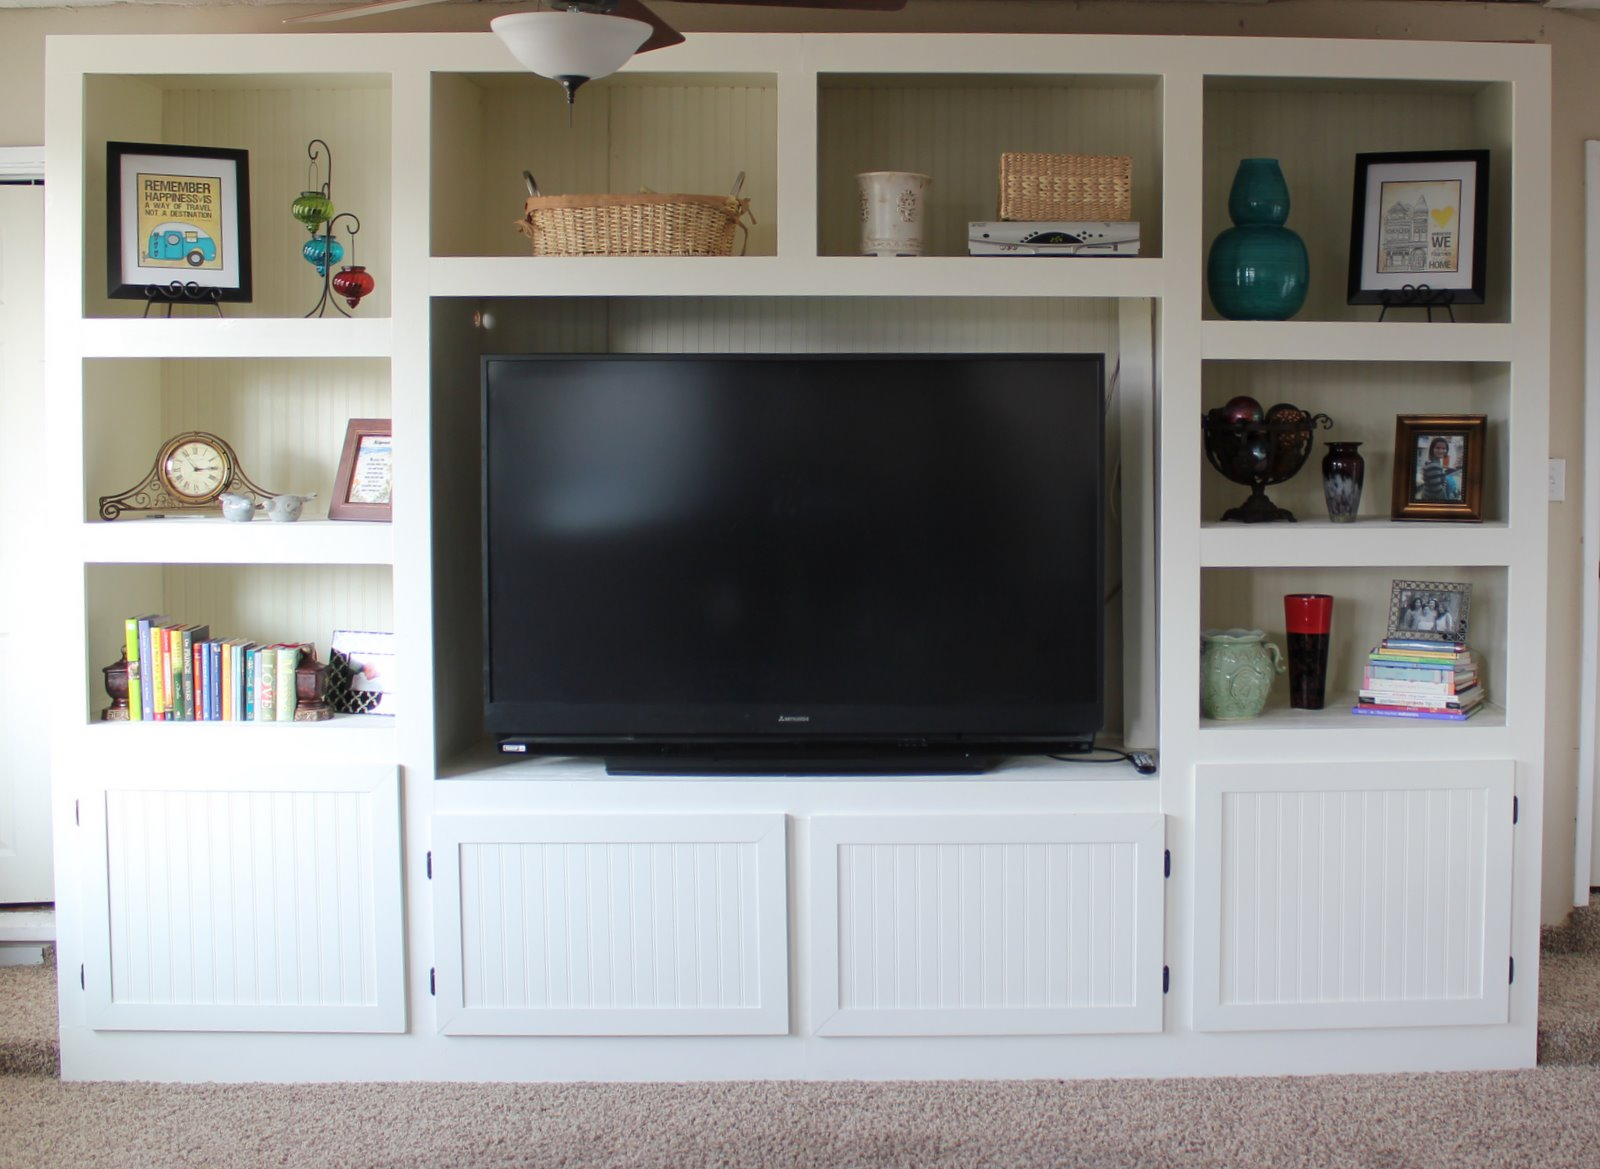 Living Room Renovation With DIY Entertainment Center for